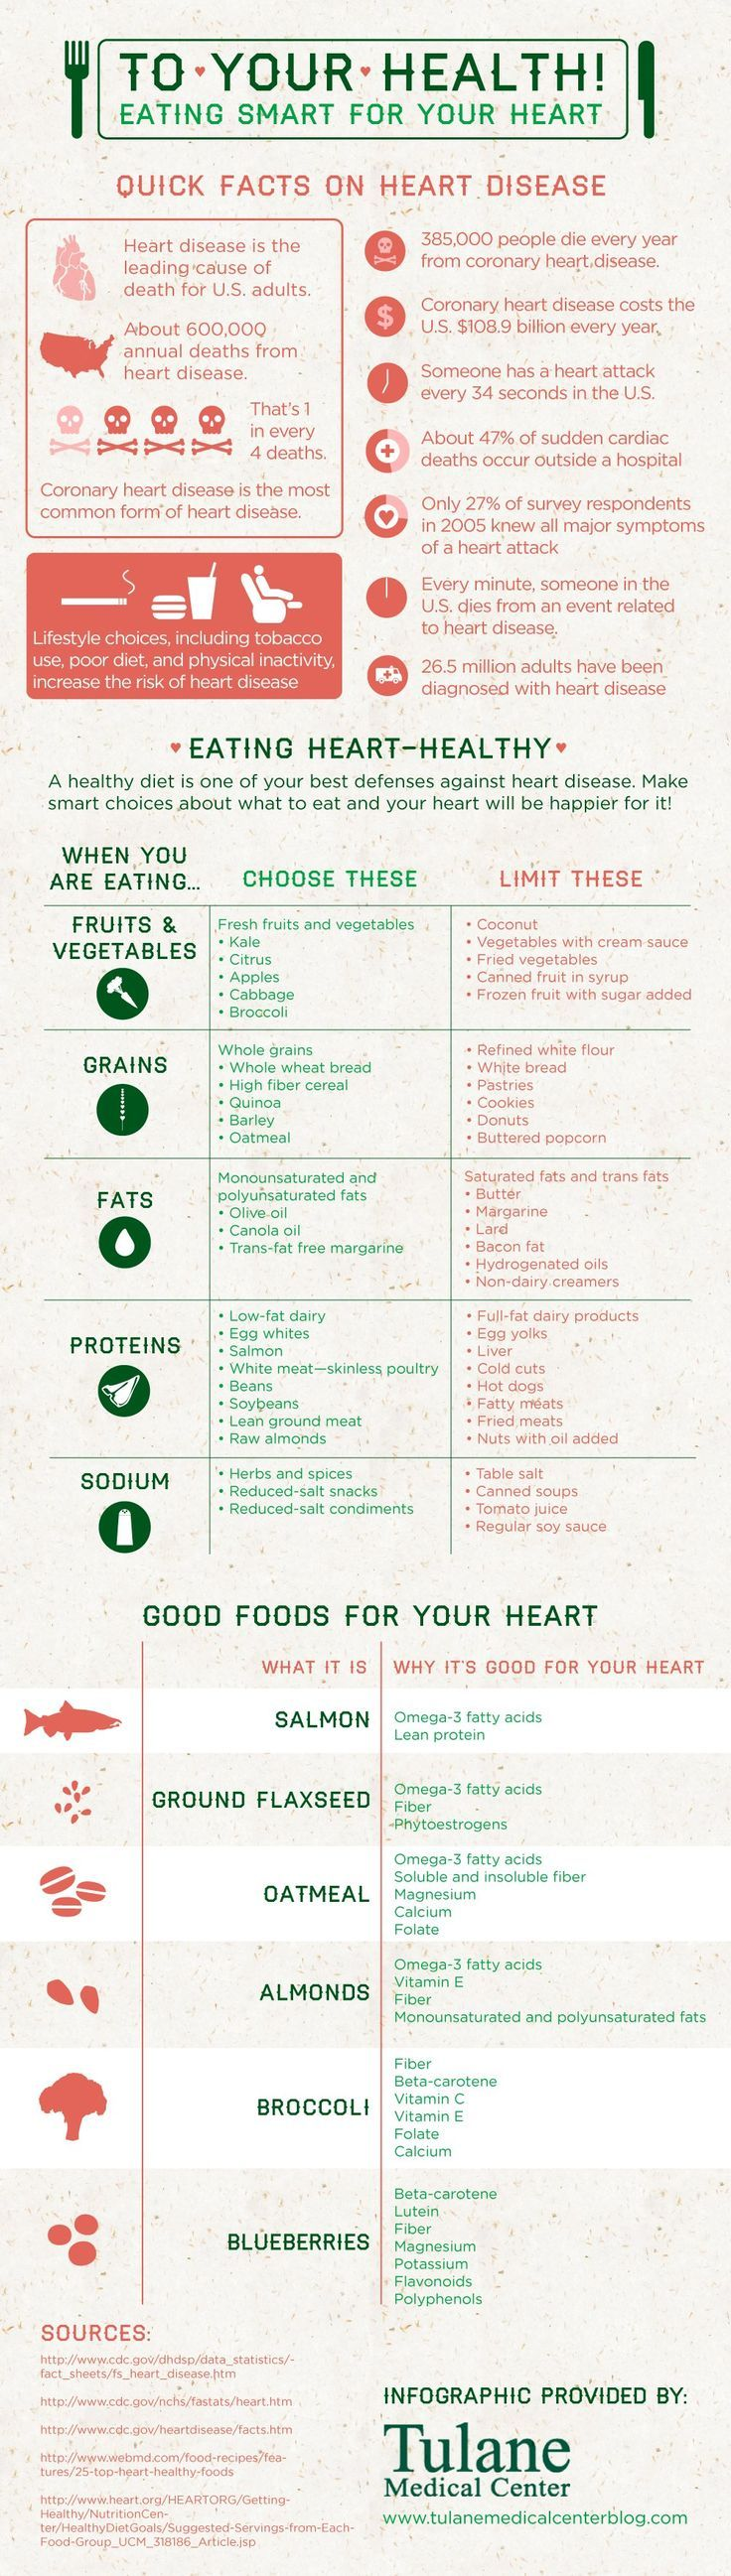 Eating for a Healthy Heart Infographic fruit healthy motivation nutrition veggie weightloss almonds Apples bacon barley beans beta carotene blueberries Broccoli cabbage calcium canola oil cardiac citrus coconuts cookies coronary heart disease dairy donuts eggs fiber flavonoids flaxseed folate heart heart disease kale liver lutein magnesium margarine meat oatmeal olive oil omega 3 fatty acids polyphenois Popcorn potassium protein quinoa Salmon soybeans sugar vitamin c vitamin e whole grains…